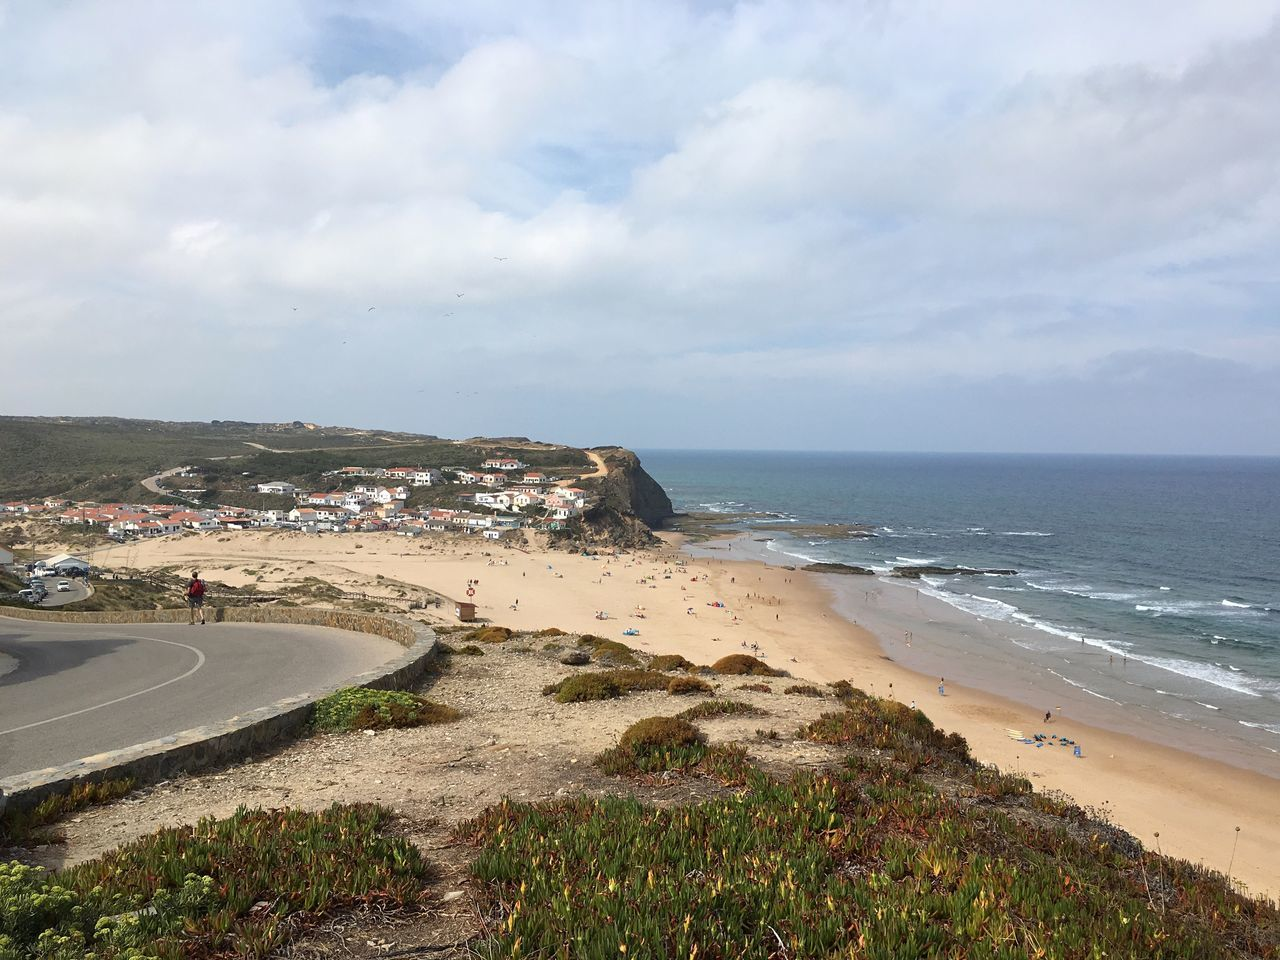 Check This Out Portugal Atlantic Ocean Seaside Algarve Aljezur Enjoying Life Sea Beach Blue Sky View Relaxing Hanging Out Built Structure Architecture Perspective Blue Down Enjoy The New Normal Day My Year My View